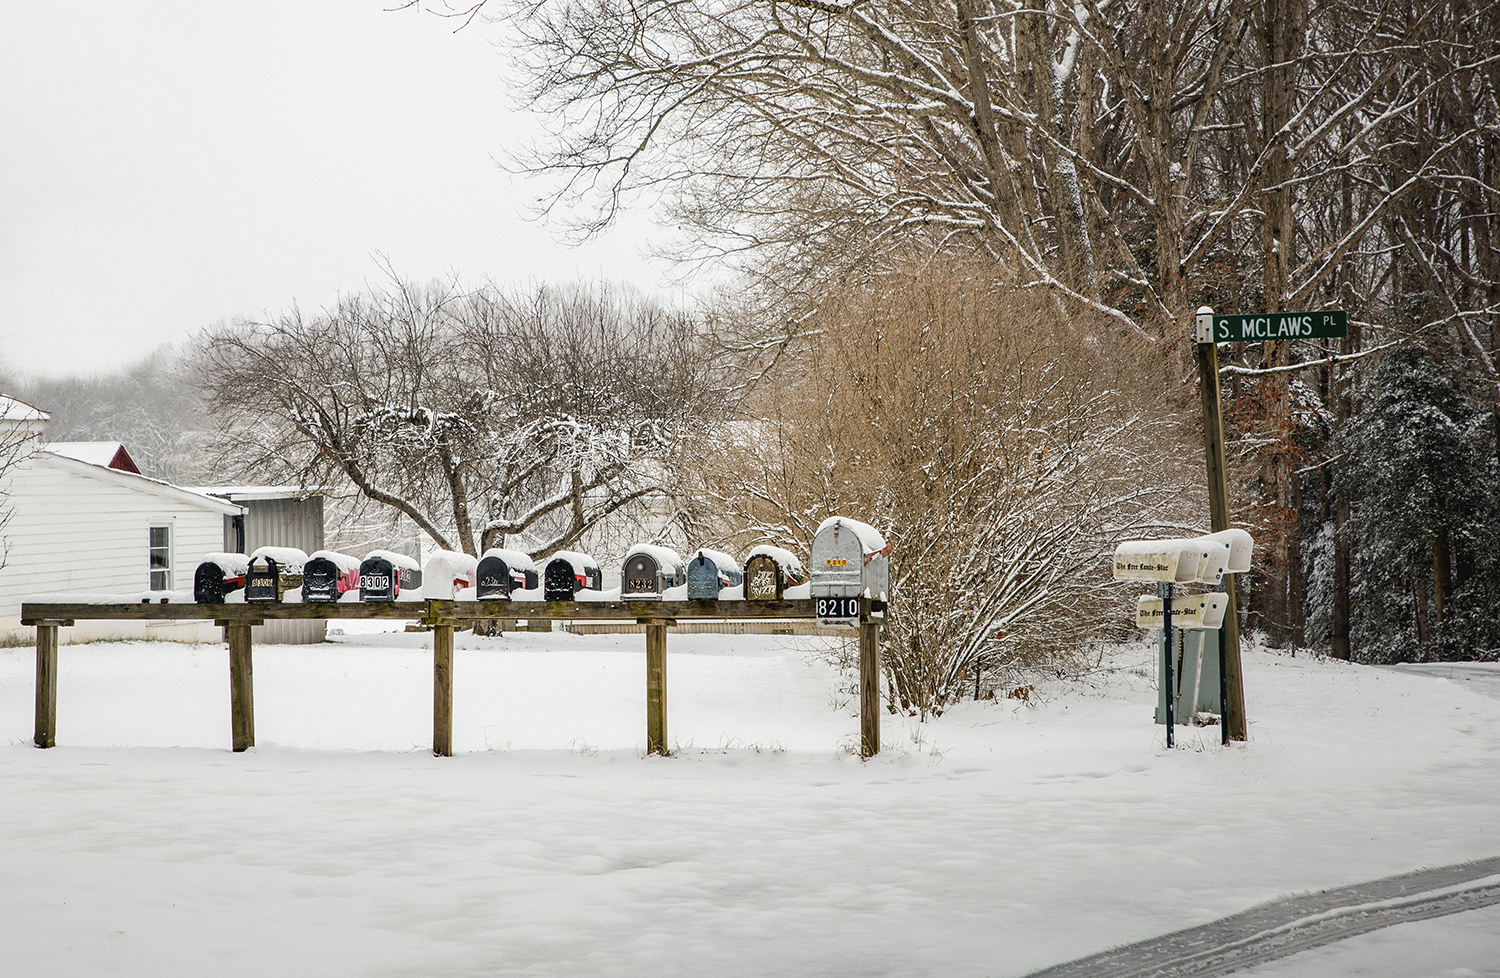 Snow_mailboxes_0001.jpg